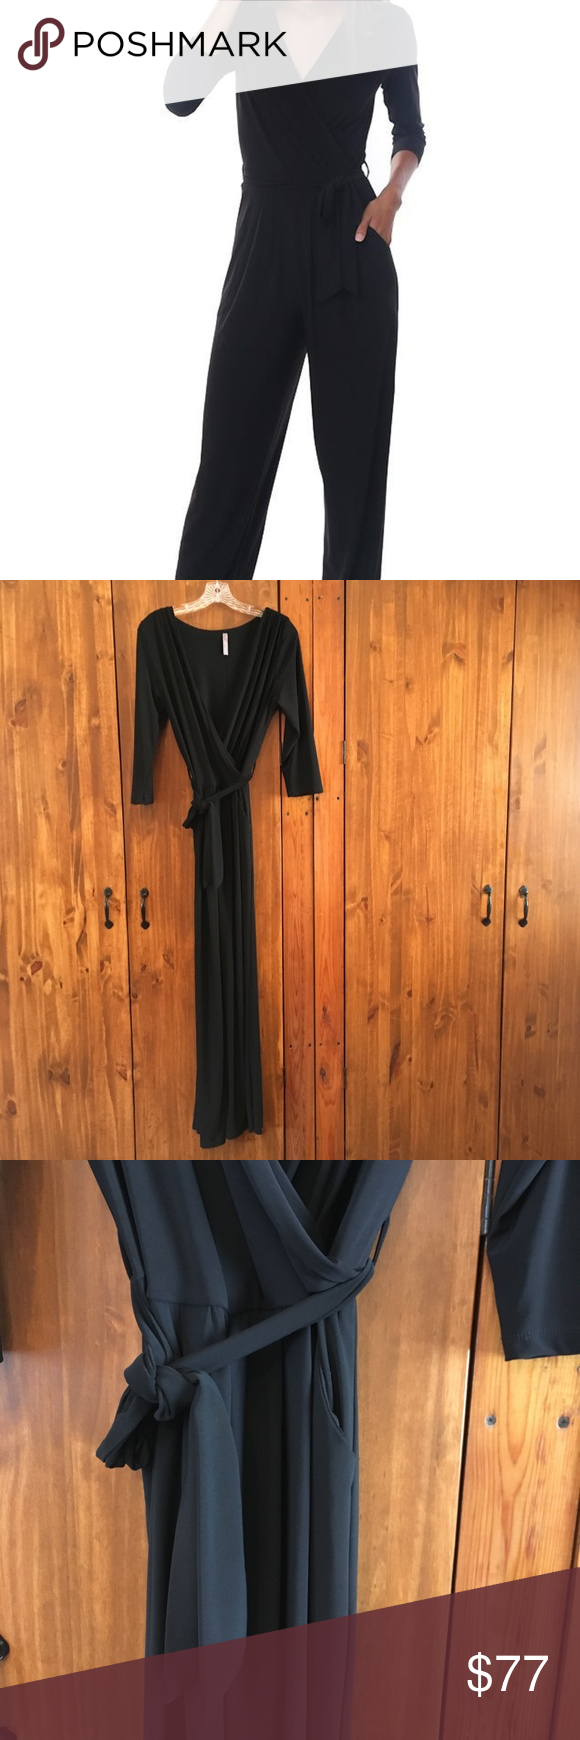 108cf842ea8e Last Tango Jumpsuit Black Size M 3/4 Sleeve Tie Waist Crossover V Neck Black  Dressy Jumpsuit. Fitted and flowing, tie waist and front pockets.